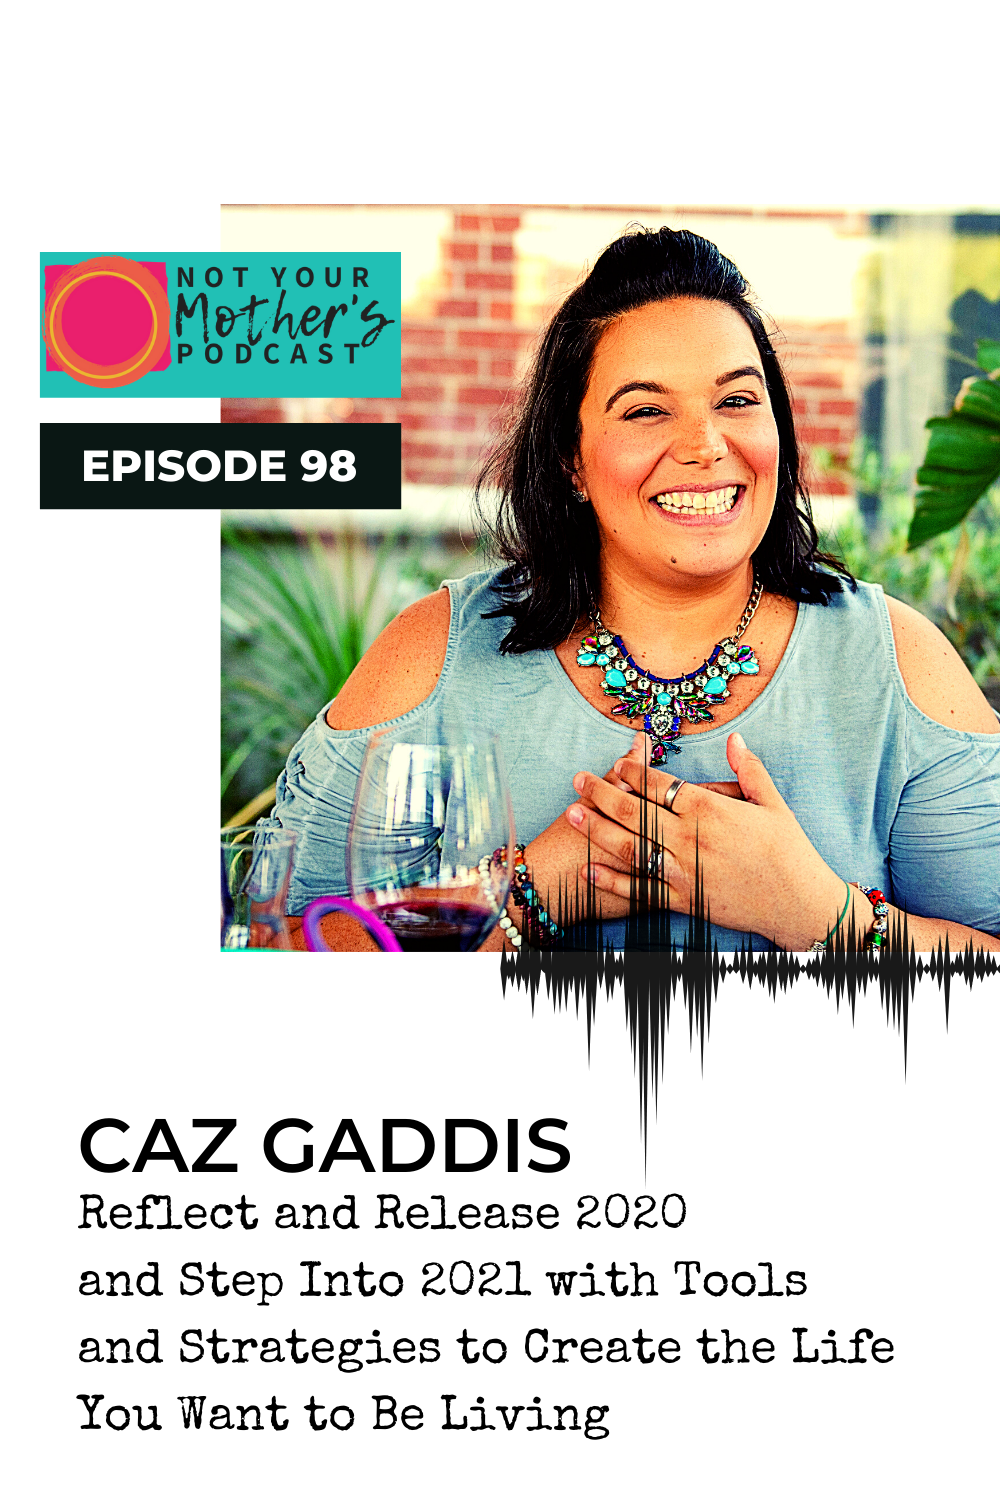 Reflect and Release 2020 and Step Into 2021 with Tools and Strategies to Create the Llife You Want to Be Living with Caz Gaddis PIN